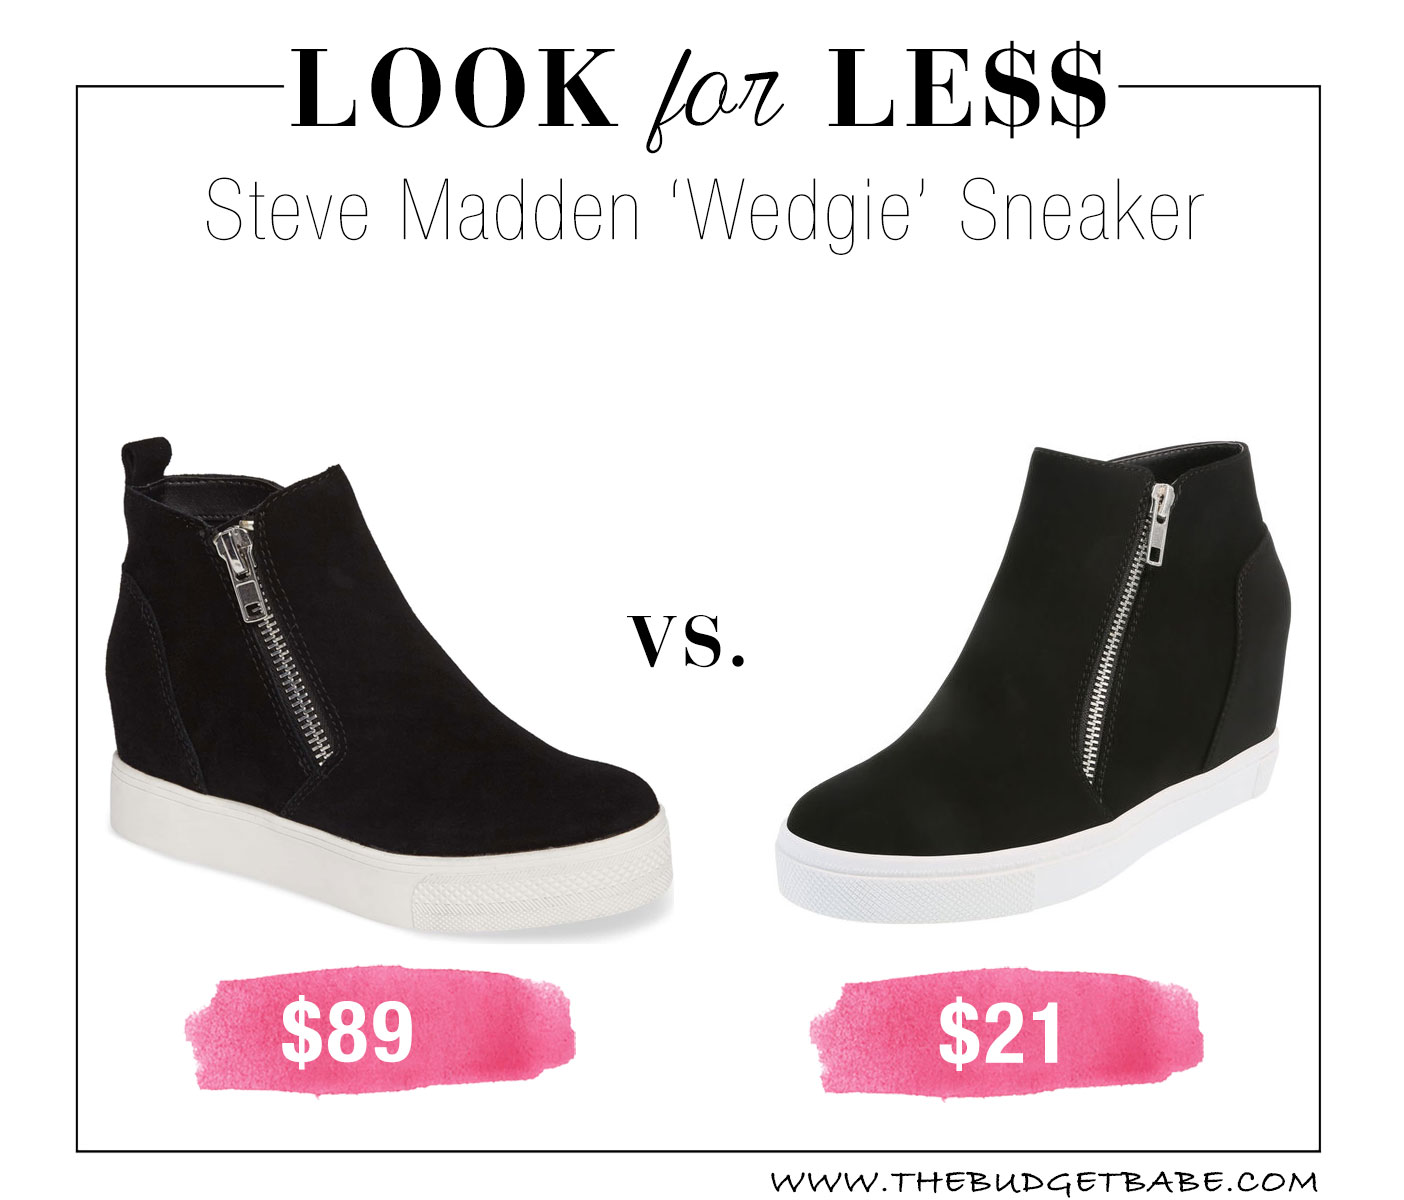 Steve Madden Wedge Sneaker dupe at Payless!